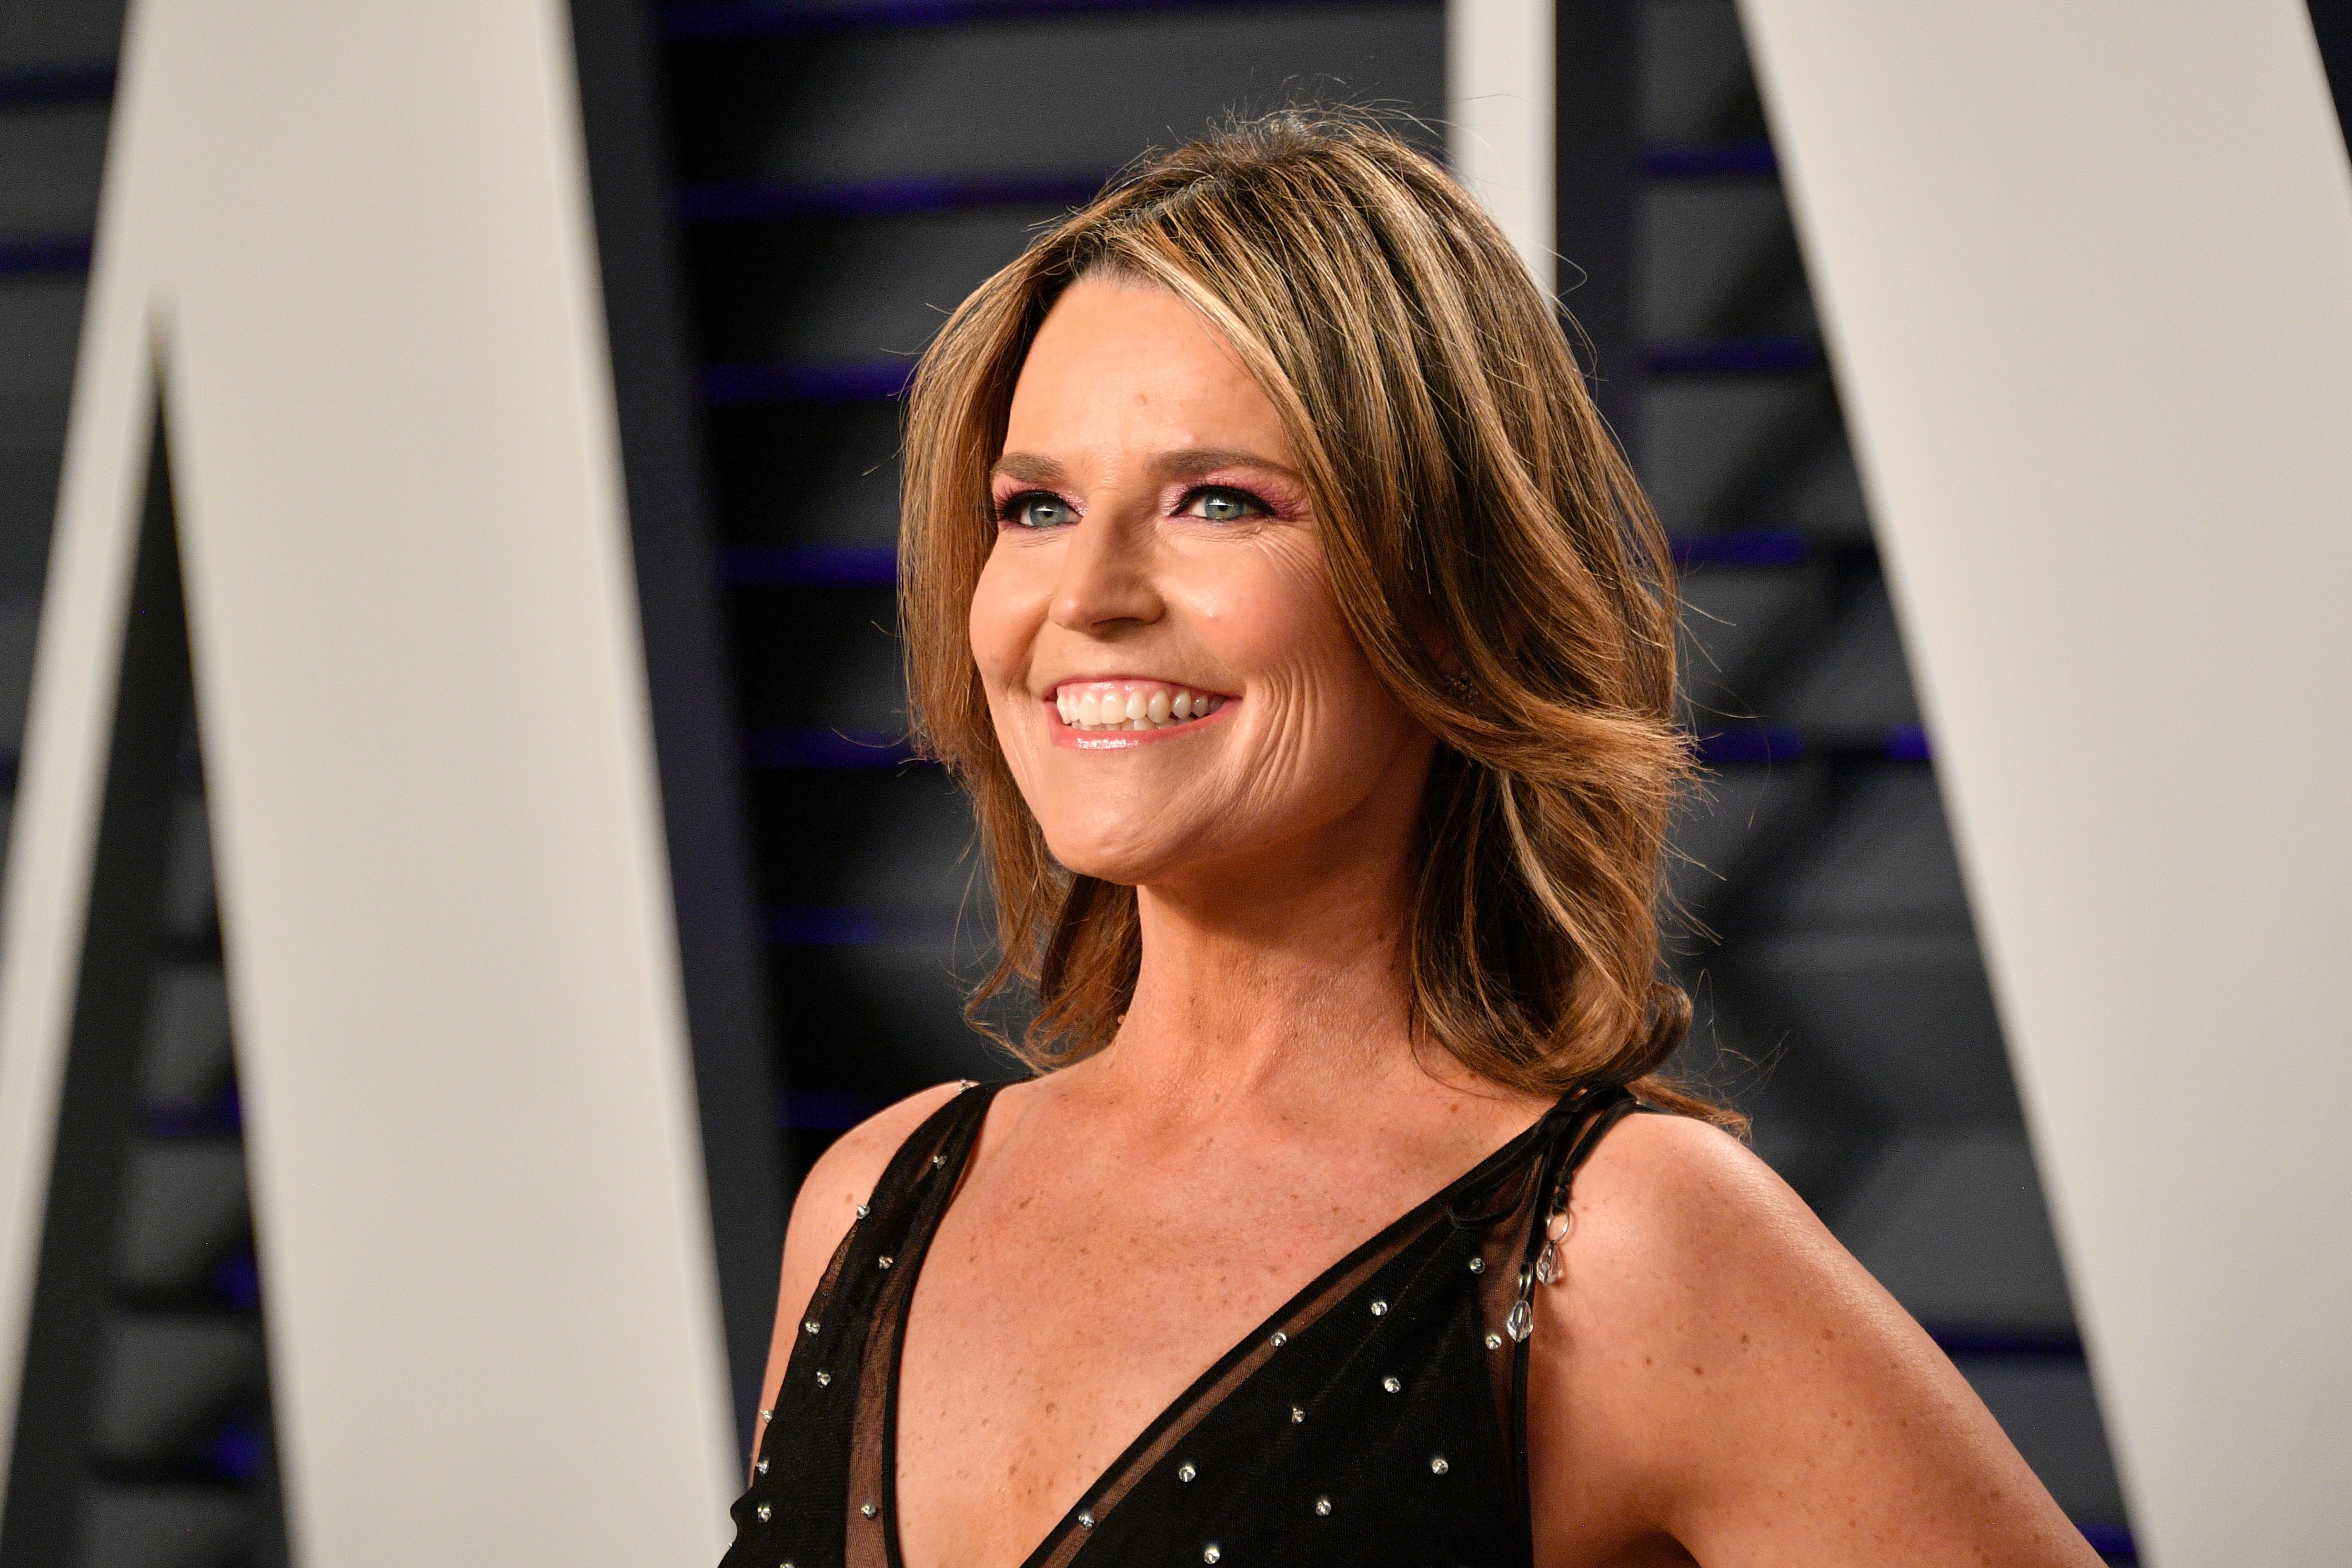 Savannah Guthrie attends the 2019 Vanity Fair Oscar Party at Wallis Annenberg Center for the Performing Arts on February 24, 2019 in Beverly Hills, California | Photo: Getty Images